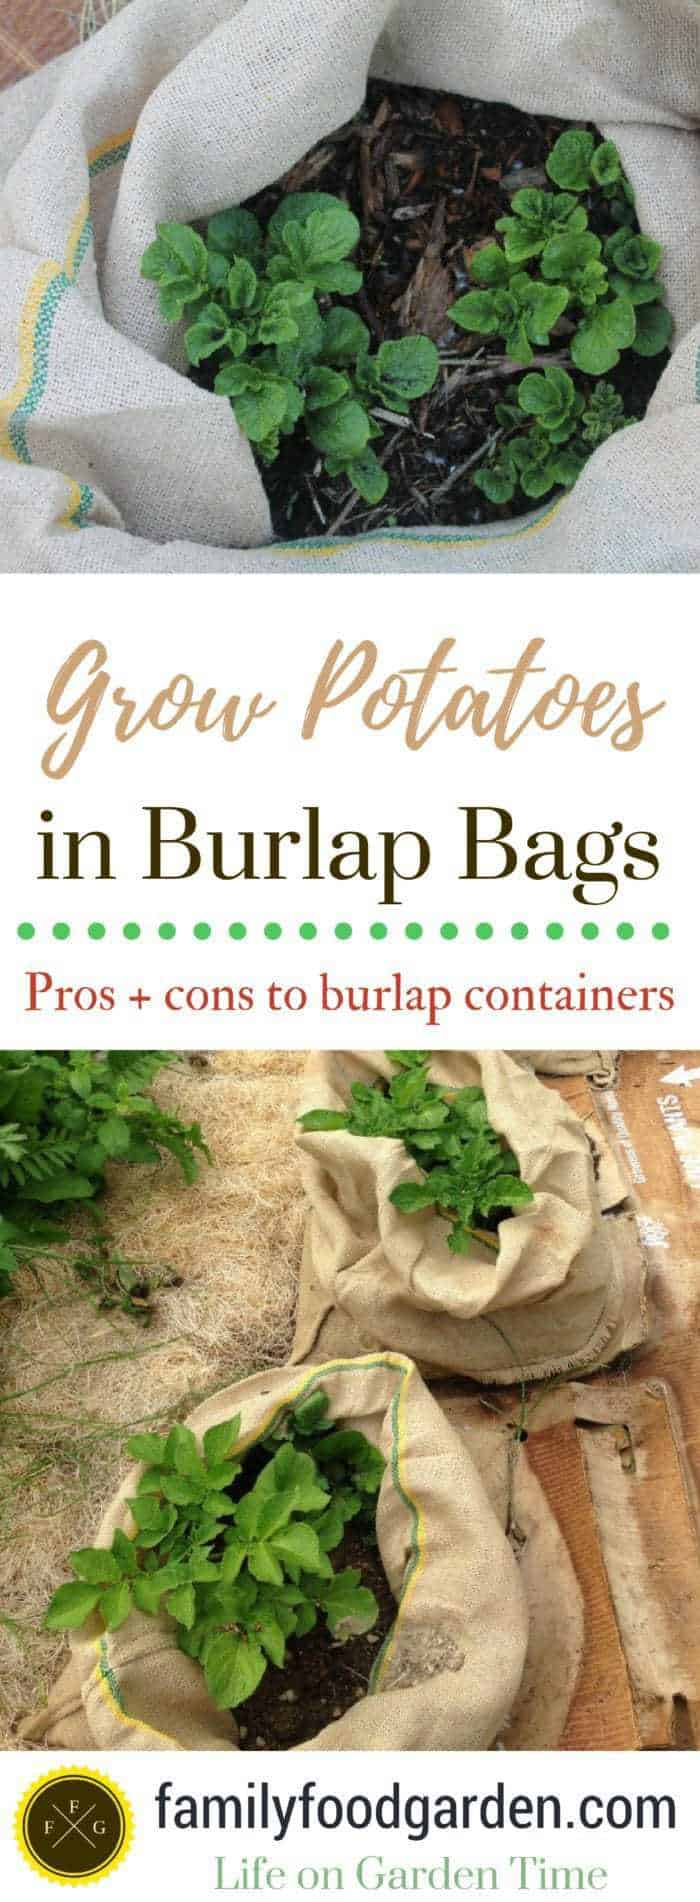 Pros and cons of using burlap sacks for container gardening